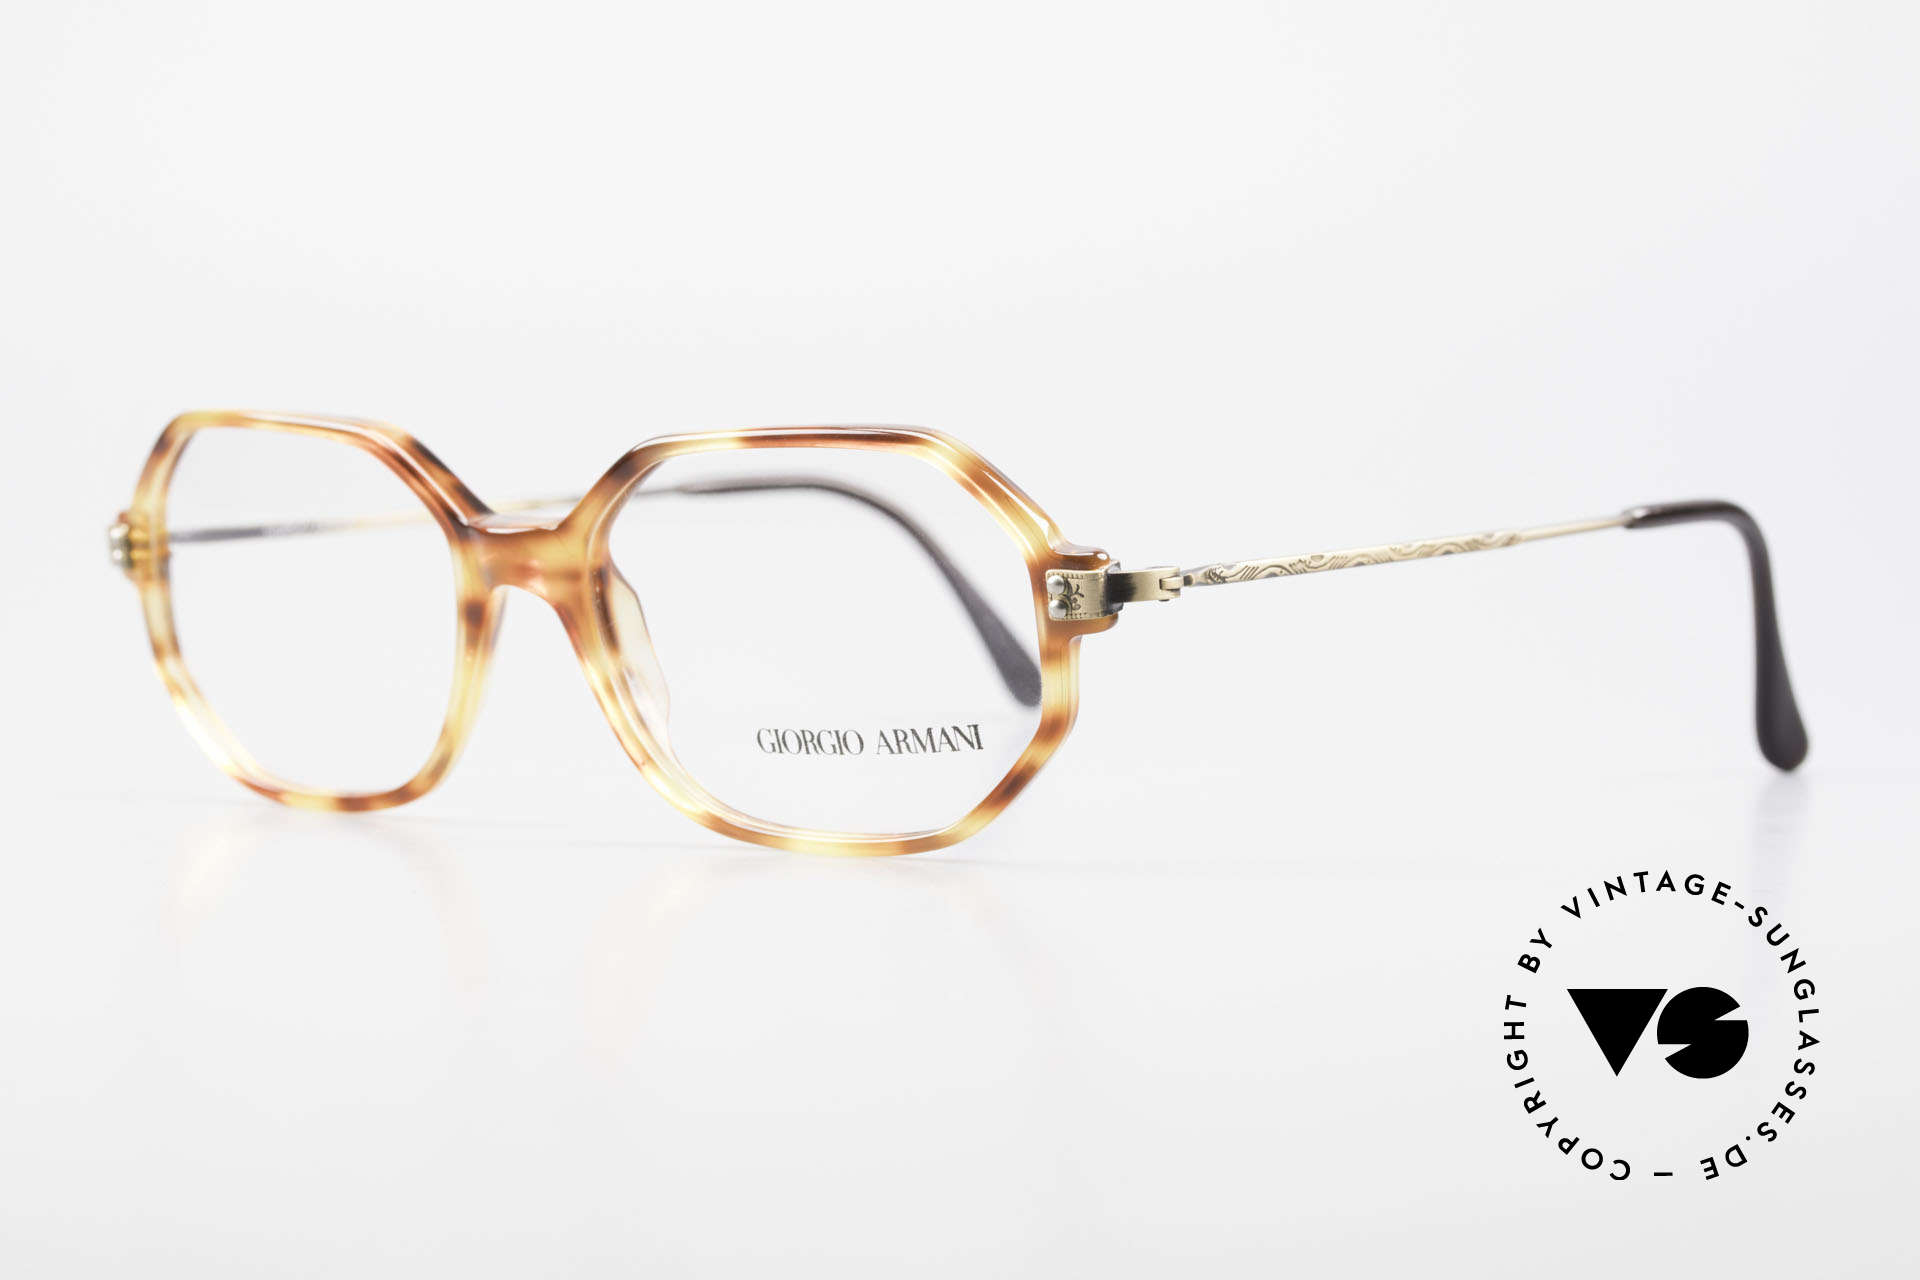 Giorgio Armani 349 No Retro Glasses Vintage Frame, amber/tortoise front with costly brass temples, Made for Men and Women